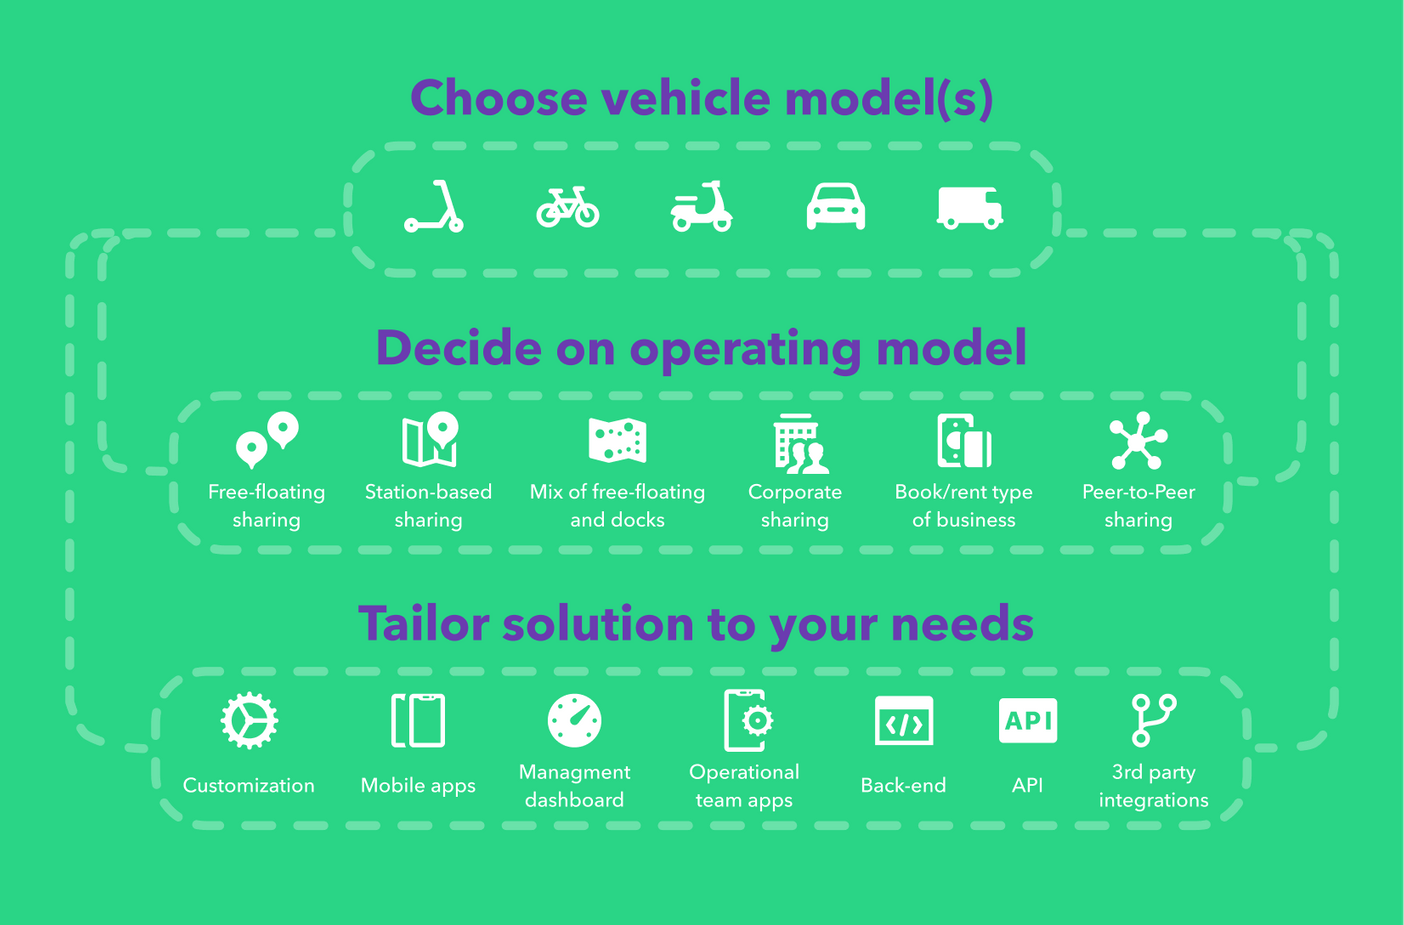 Customize your vehicle sharing platform with ease